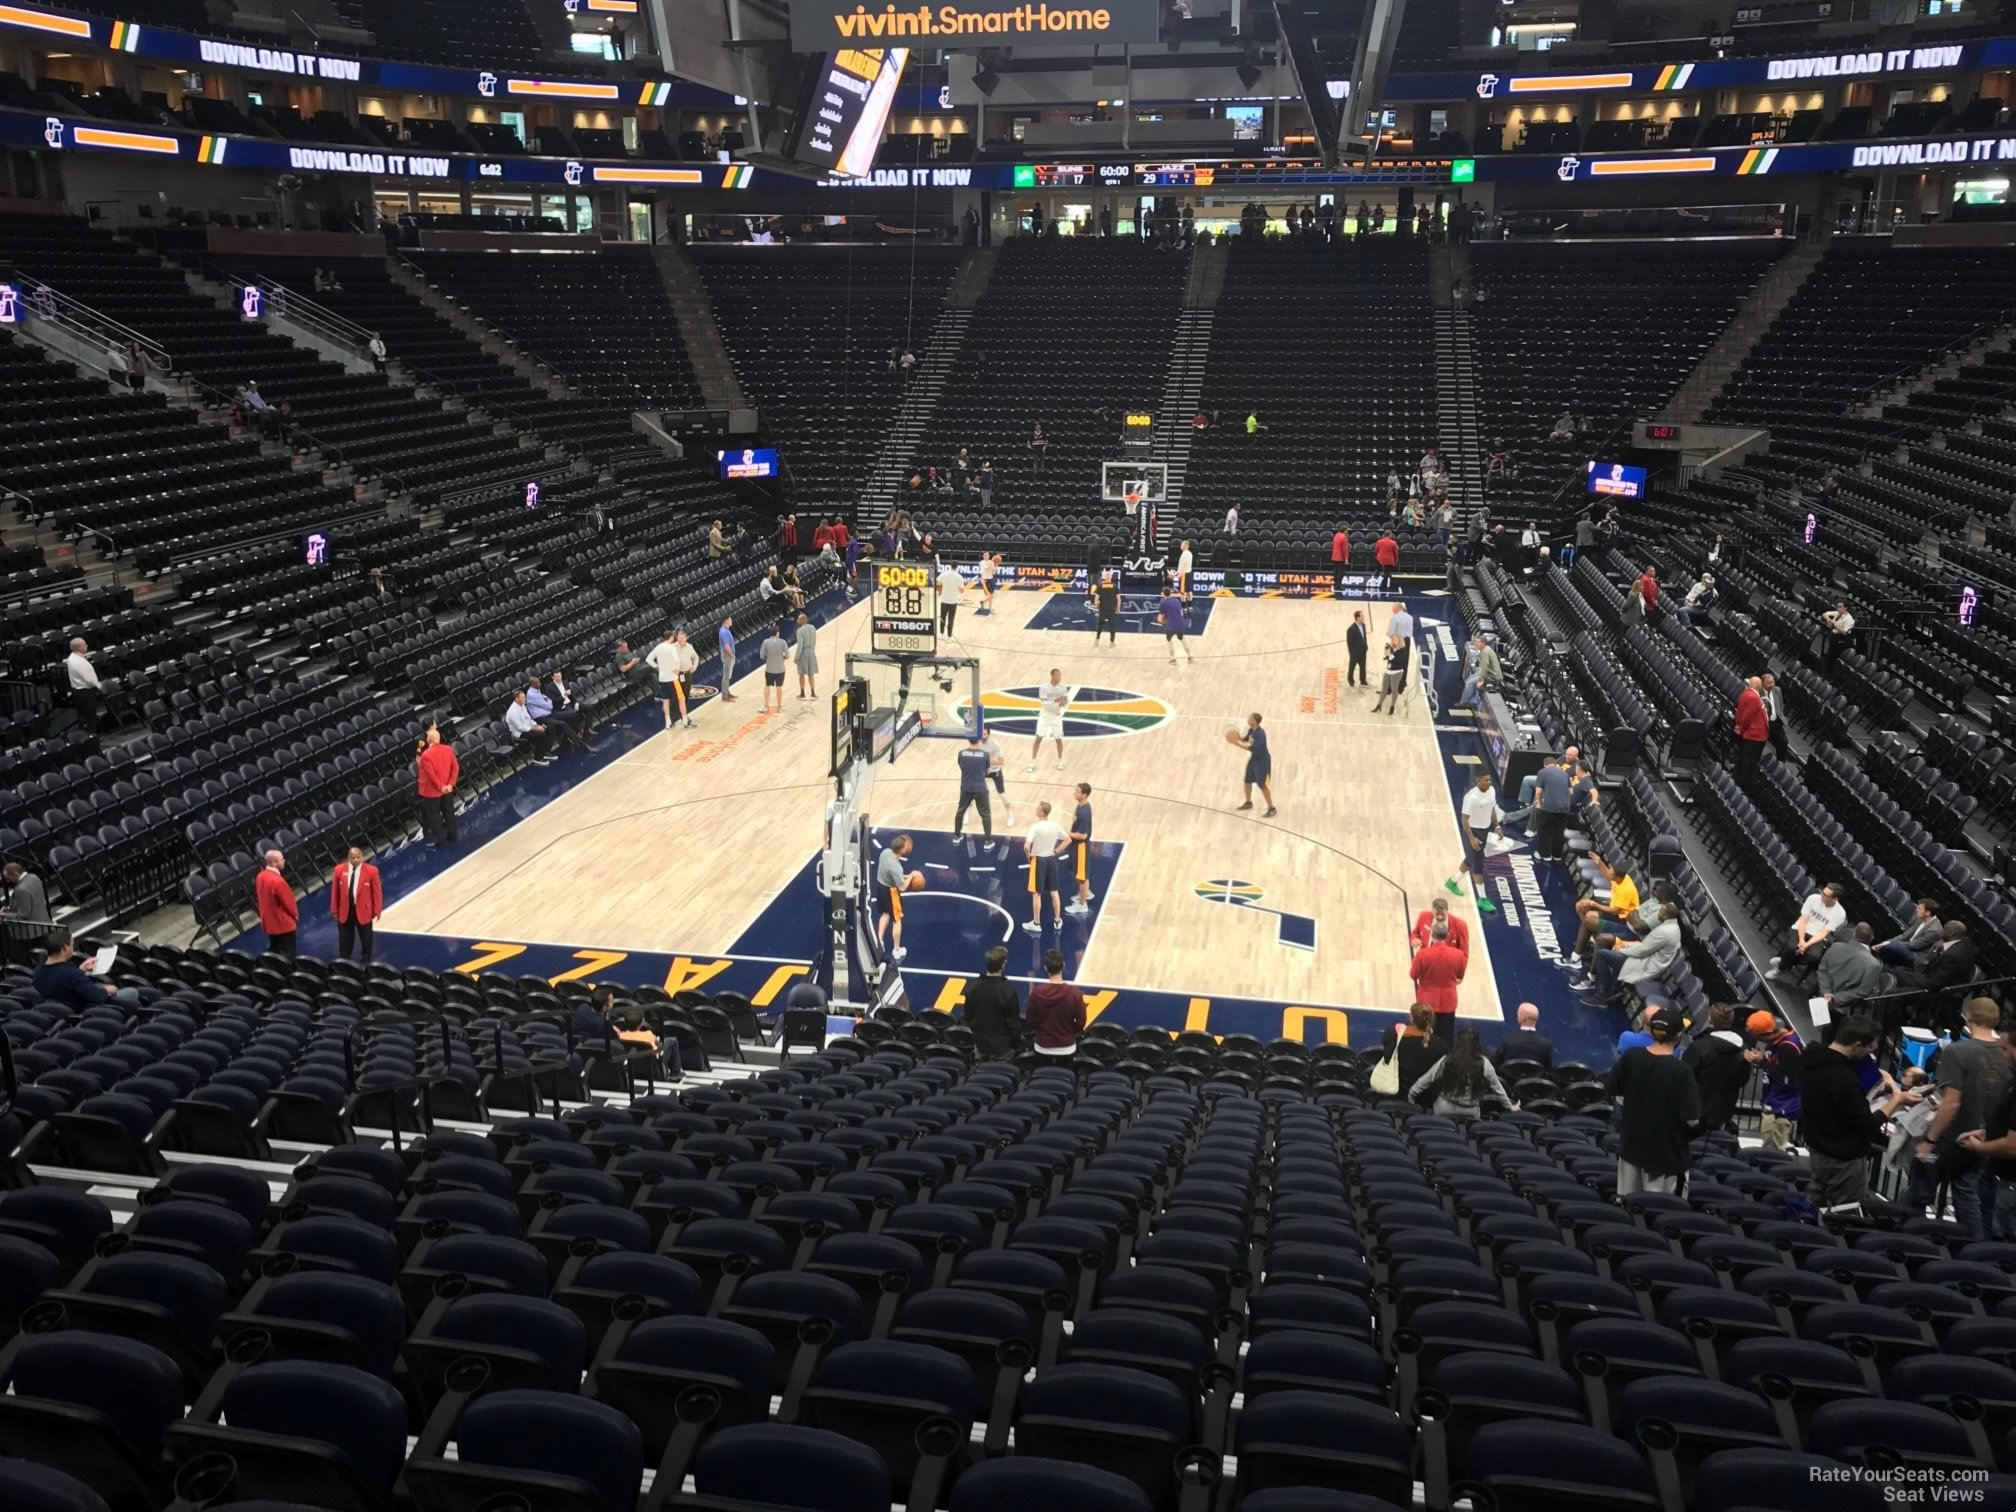 Seat View for Vivint Smart Home Arena Section 12, Row 20